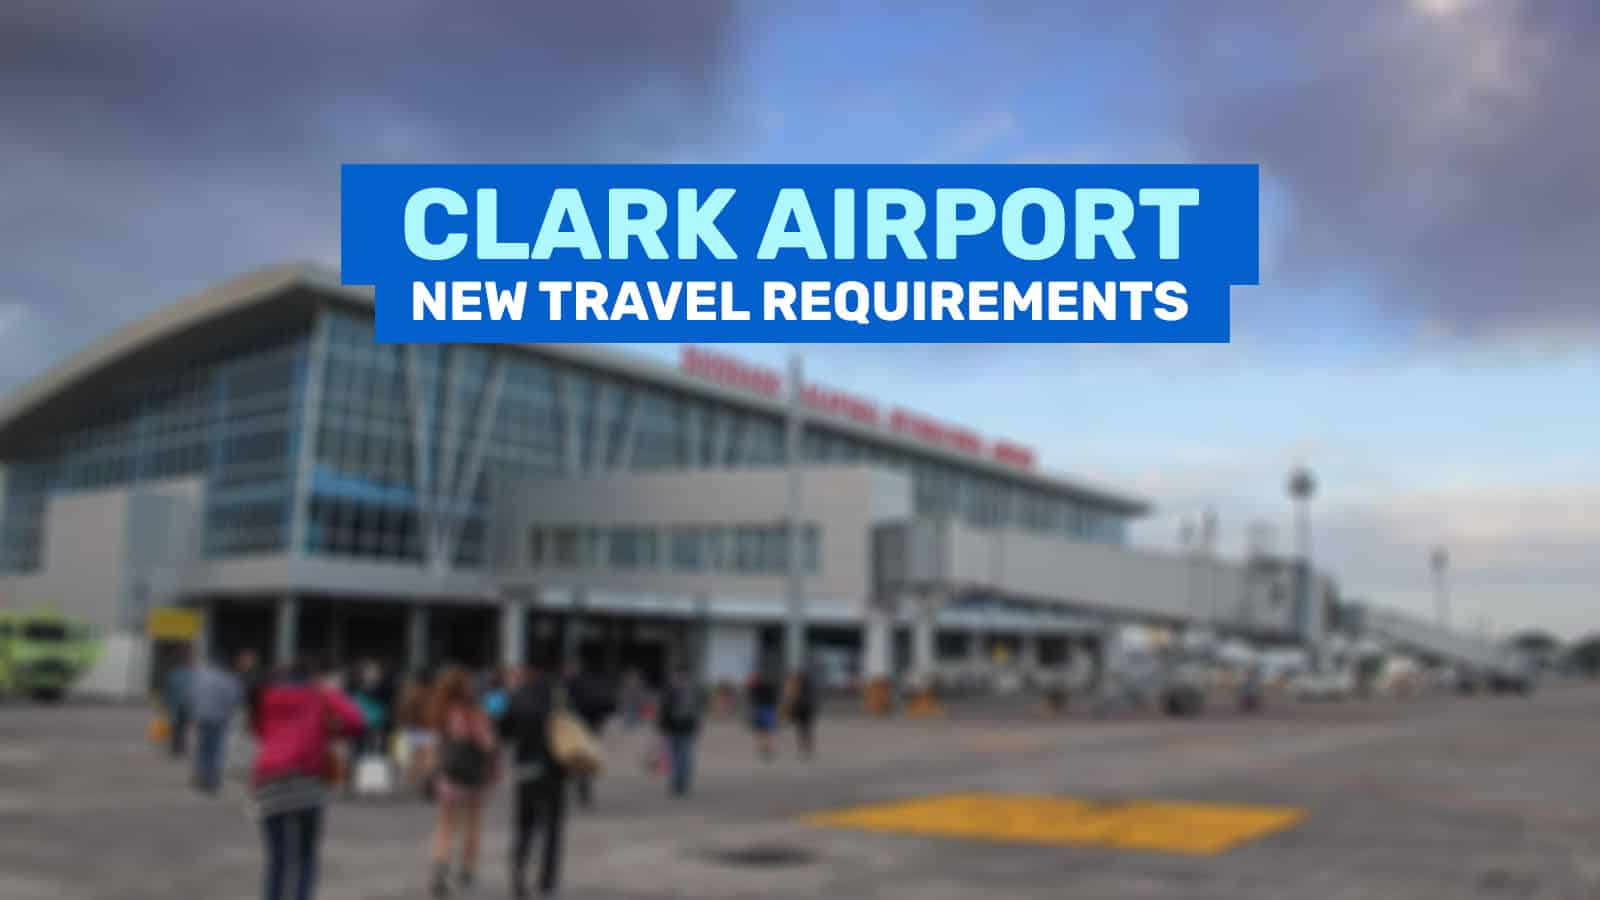 CLARK AIRPORT: New Travel Requirements & Guidelines for Arrival